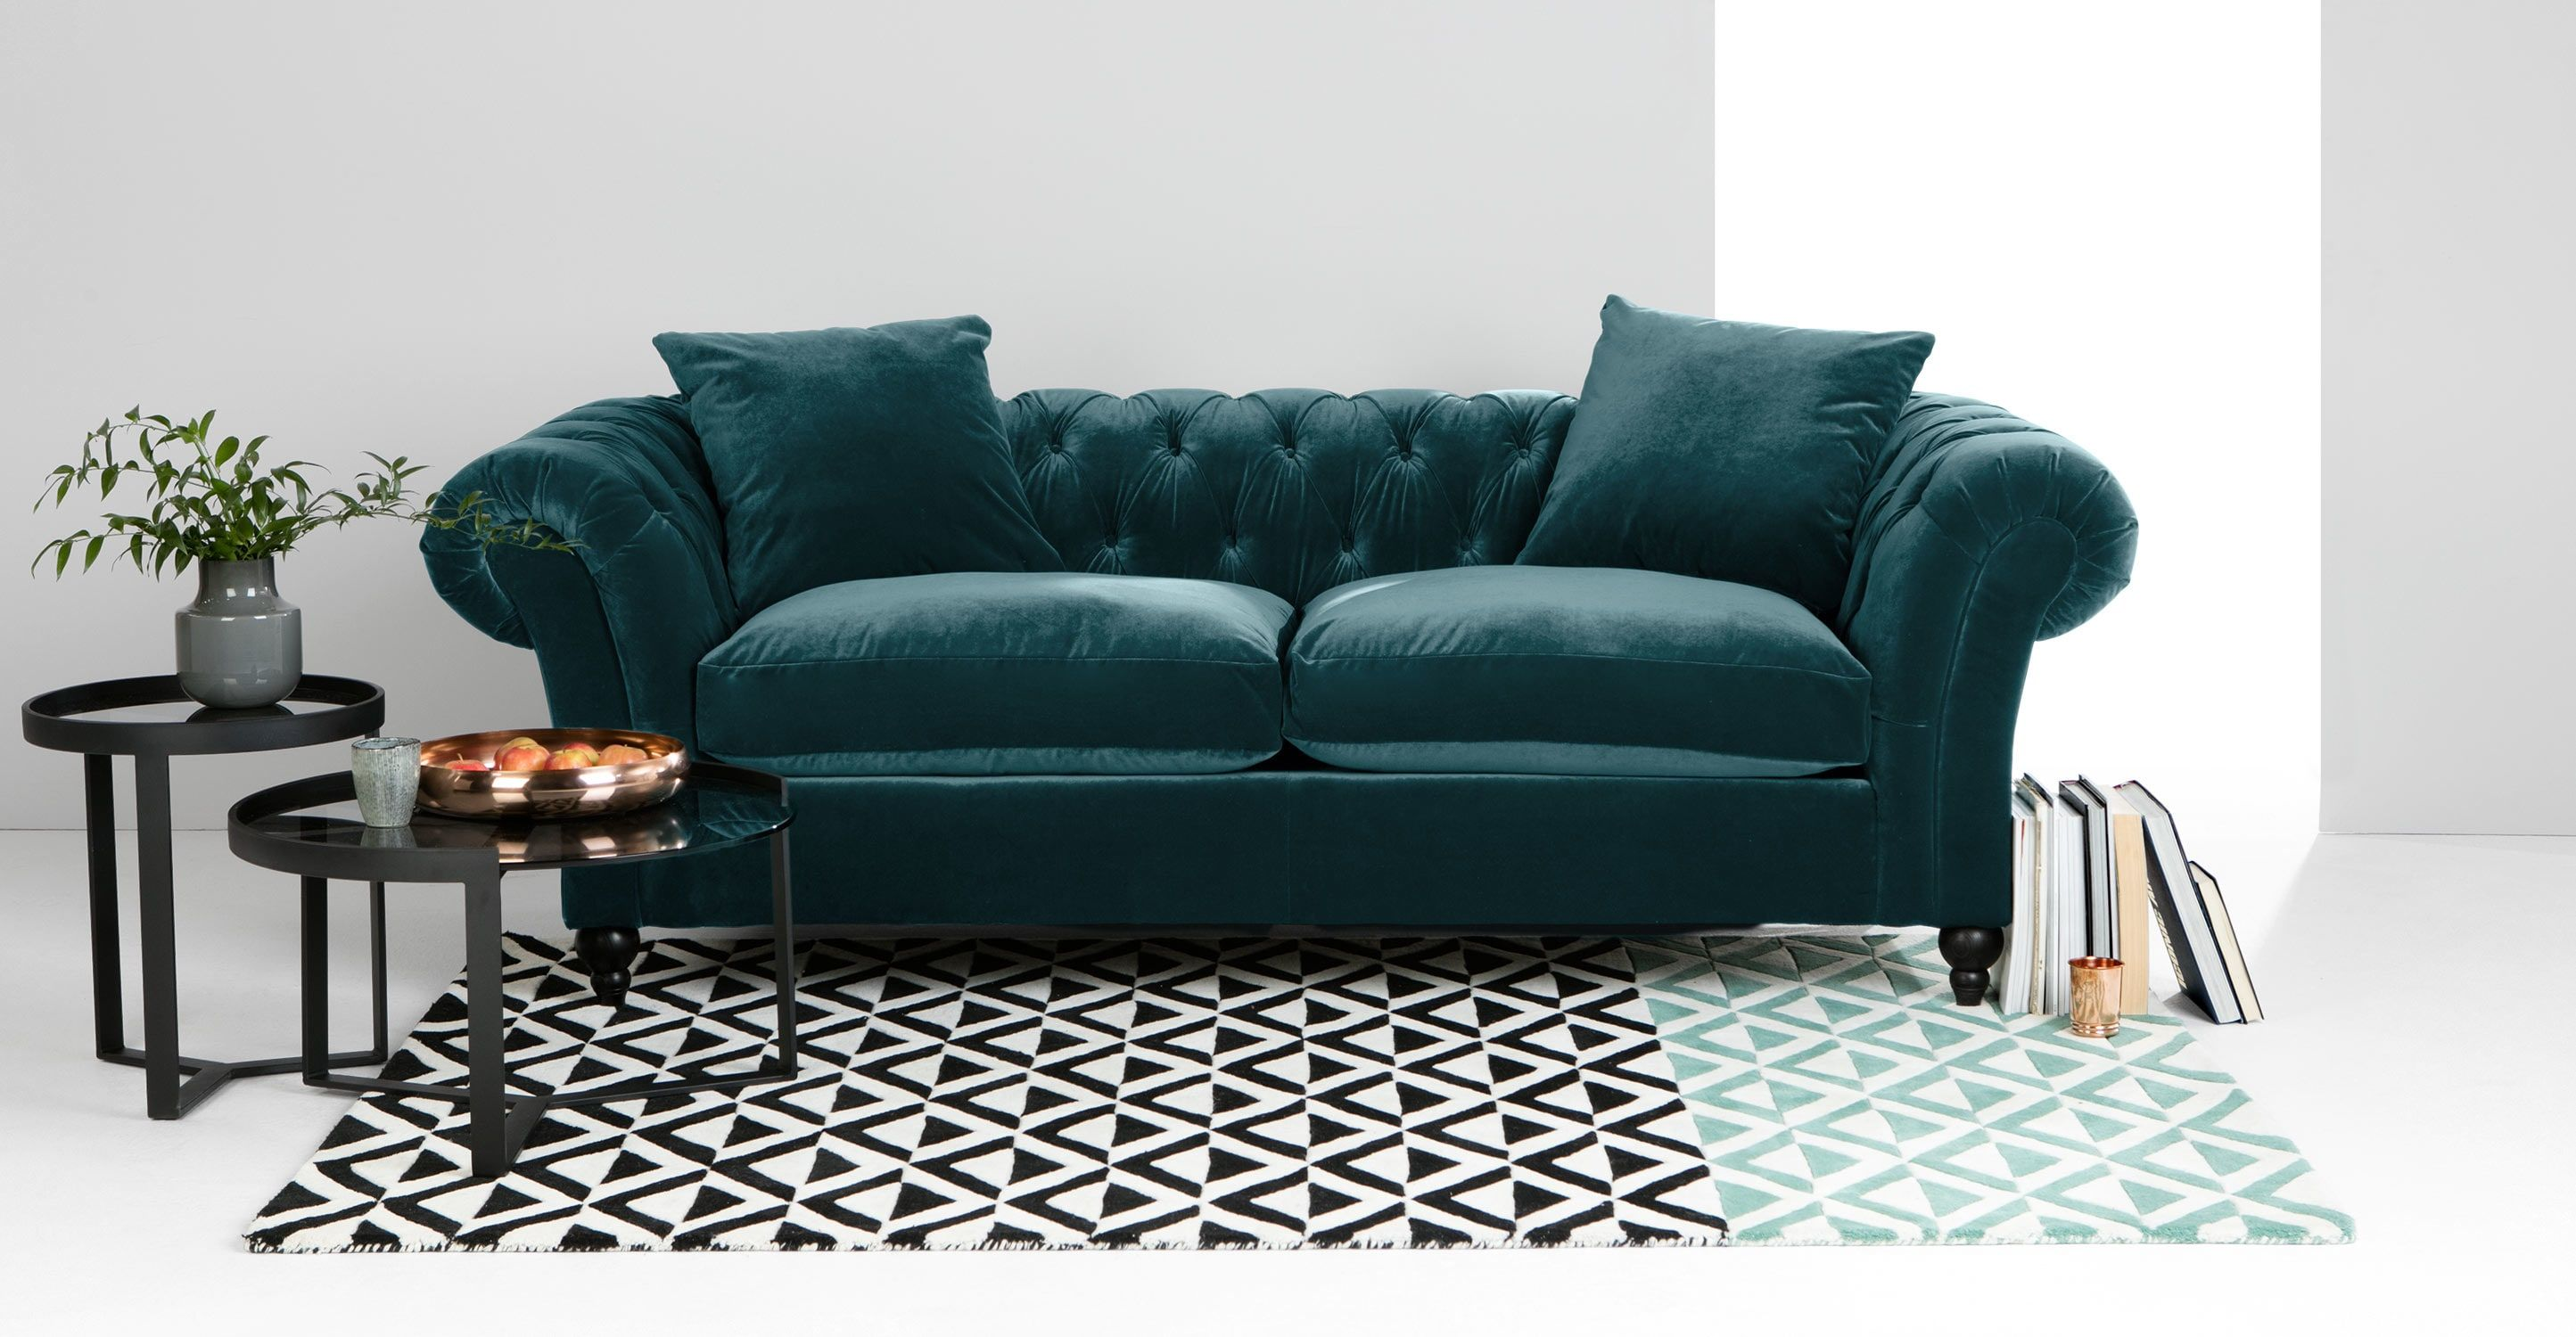 bardot 3 sitzer chesterfield sofa samt in ozeanblau haus pinterest chesterfield sofa. Black Bedroom Furniture Sets. Home Design Ideas